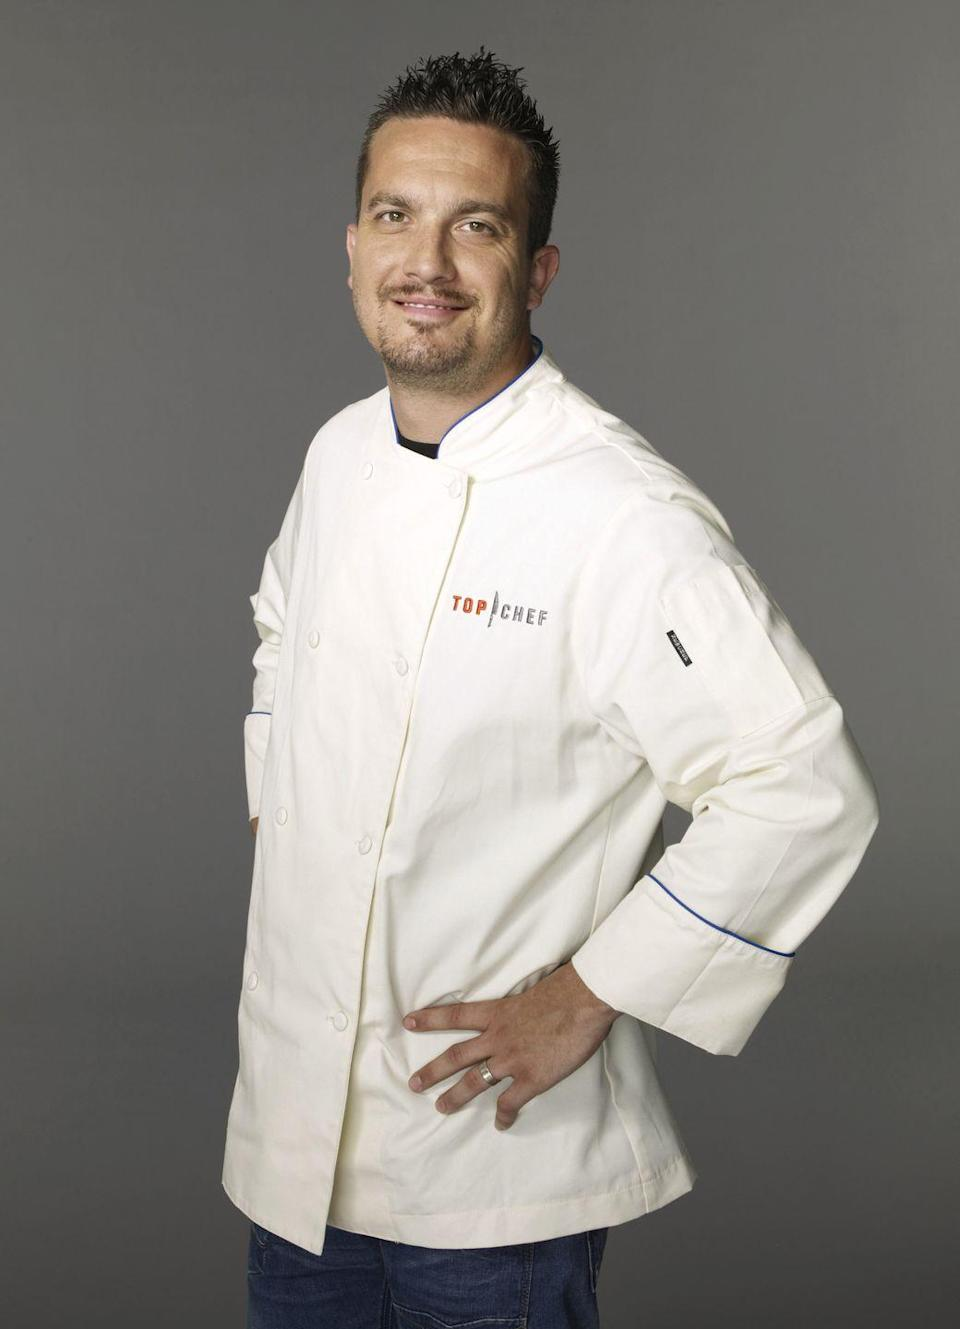 <p>After opening up several restaurants in his native Italy, Fabio Viviani moved to California in 2005. It was there that he opened Café Firenze and Firenze Osteria. In 2009, he appeared on season five of <em>Top Chef</em> and, although he did not win, he became a fan favorite.</p>